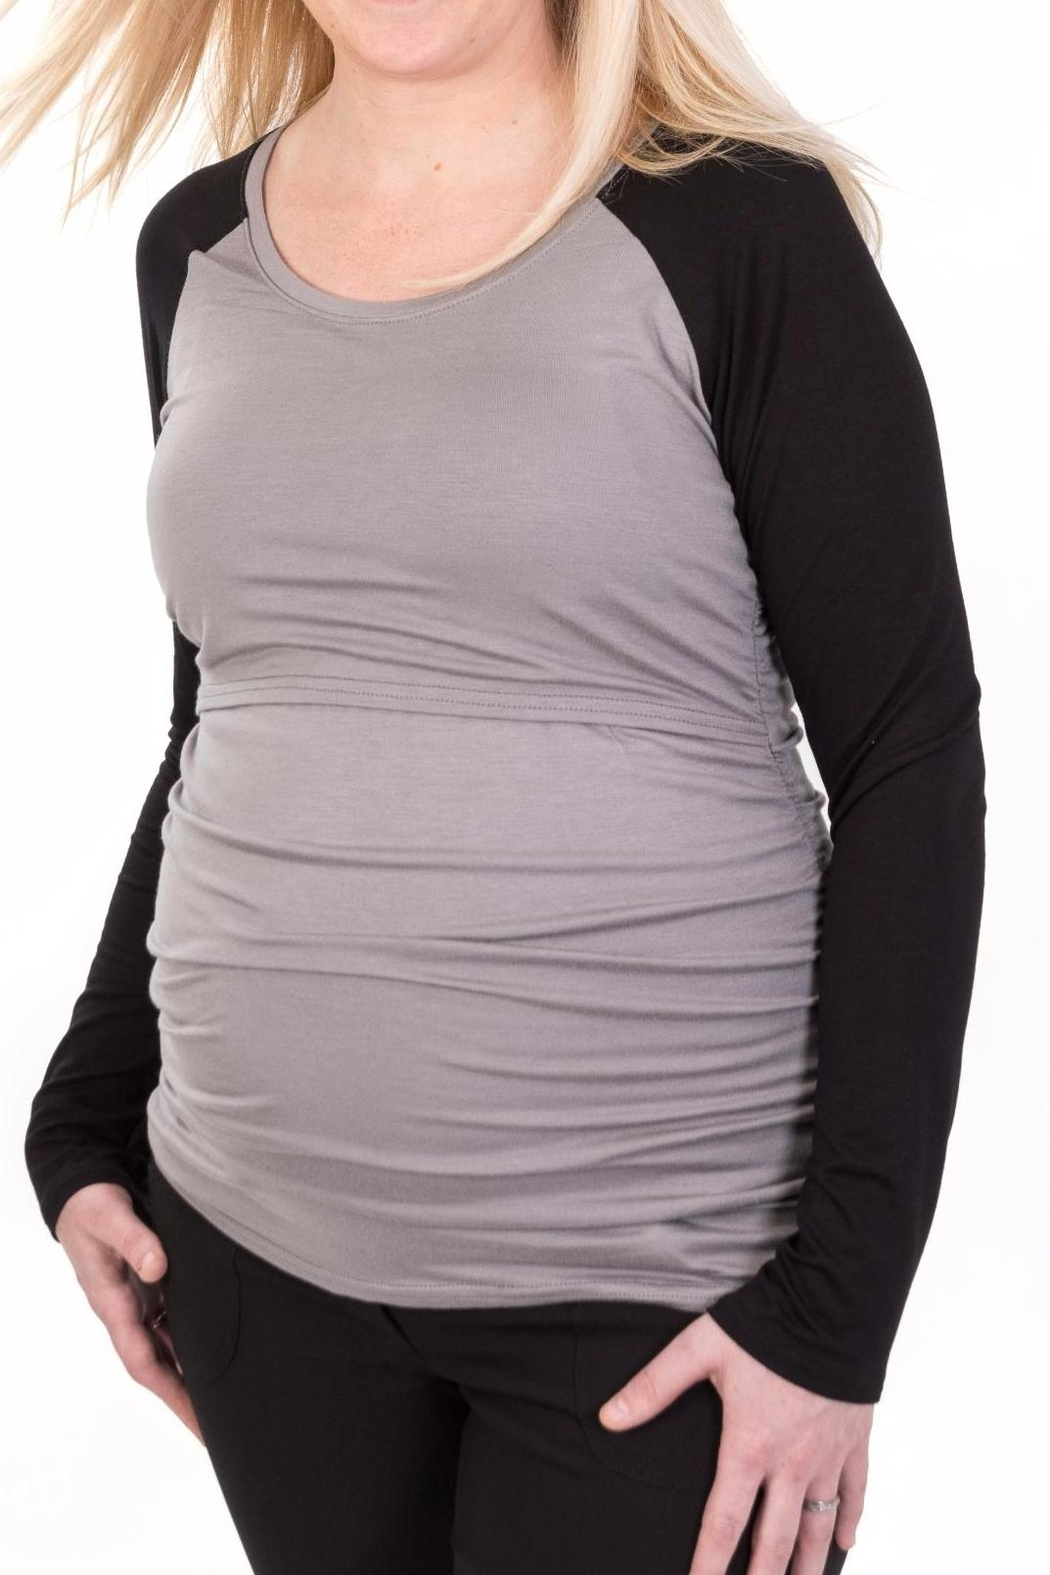 ffe7f4be27794 Bellybedaine Baseball Maternity Top from Canada by BellyBedaine ...